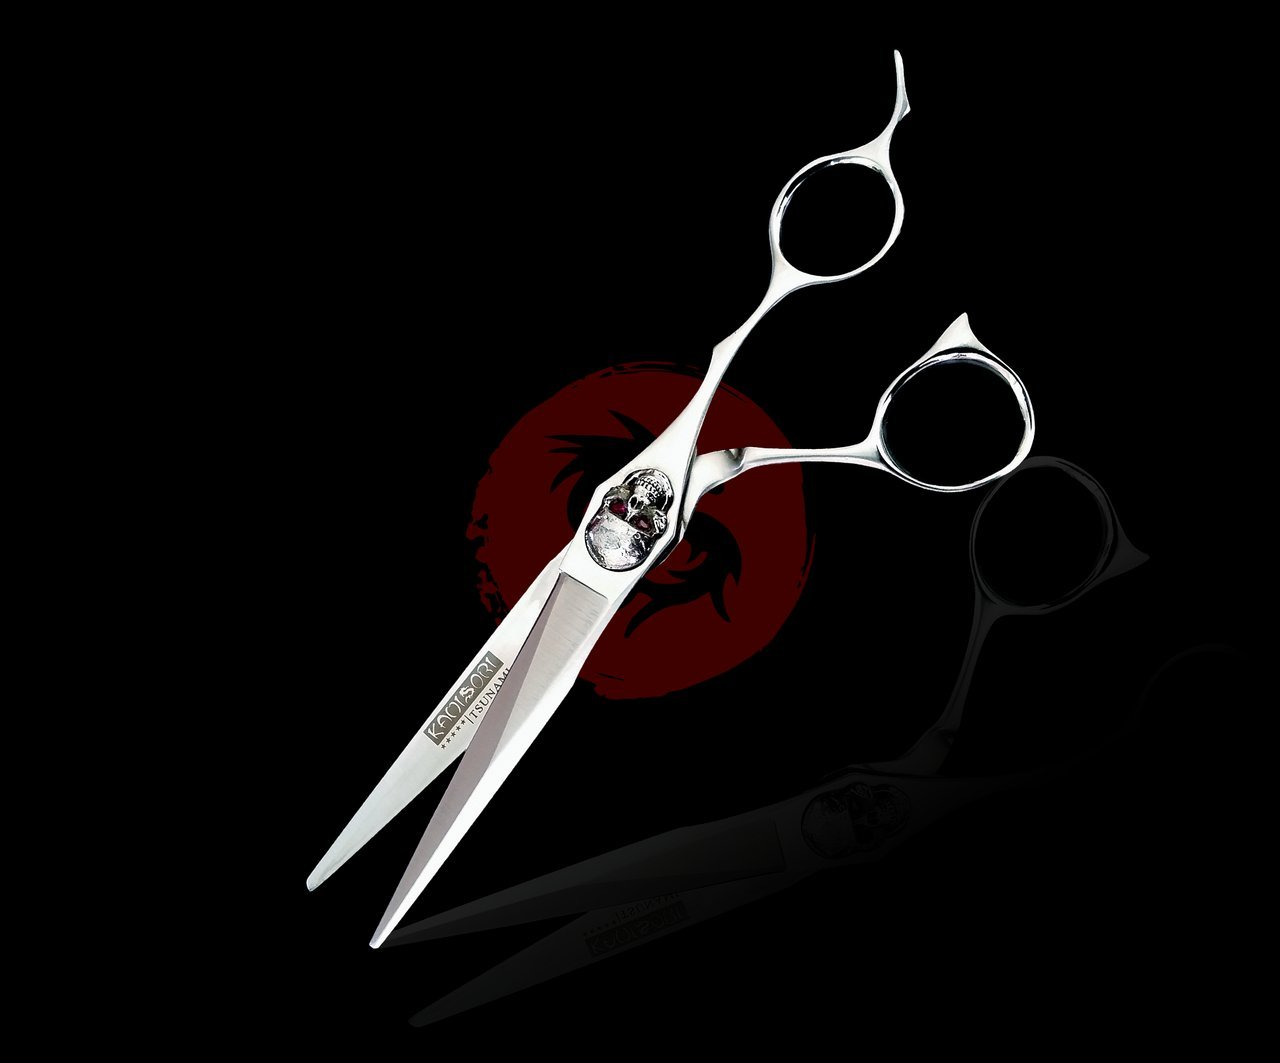 Kamisori Tsunami 6.0'' Hair Cutting Shear / Scissor (T-1) - Molybdenum Japanese Steel -Authorized Distributor